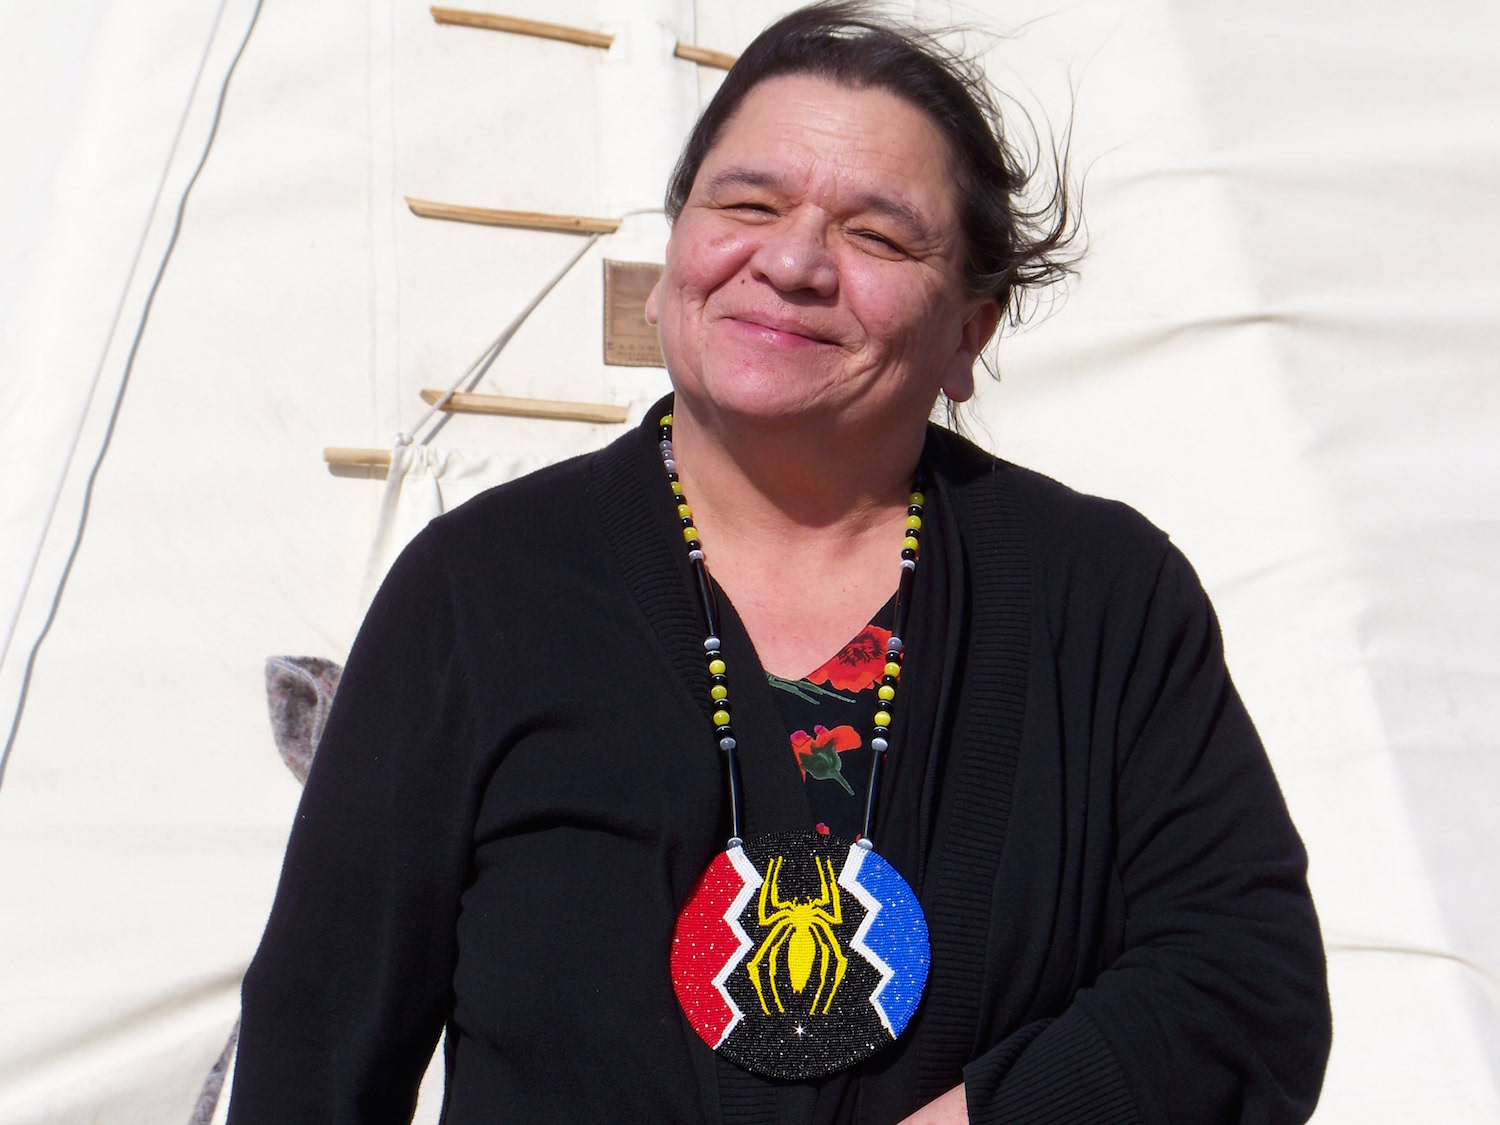 Vi Waln: Don't be afraid to come pray with your Lakota relatives